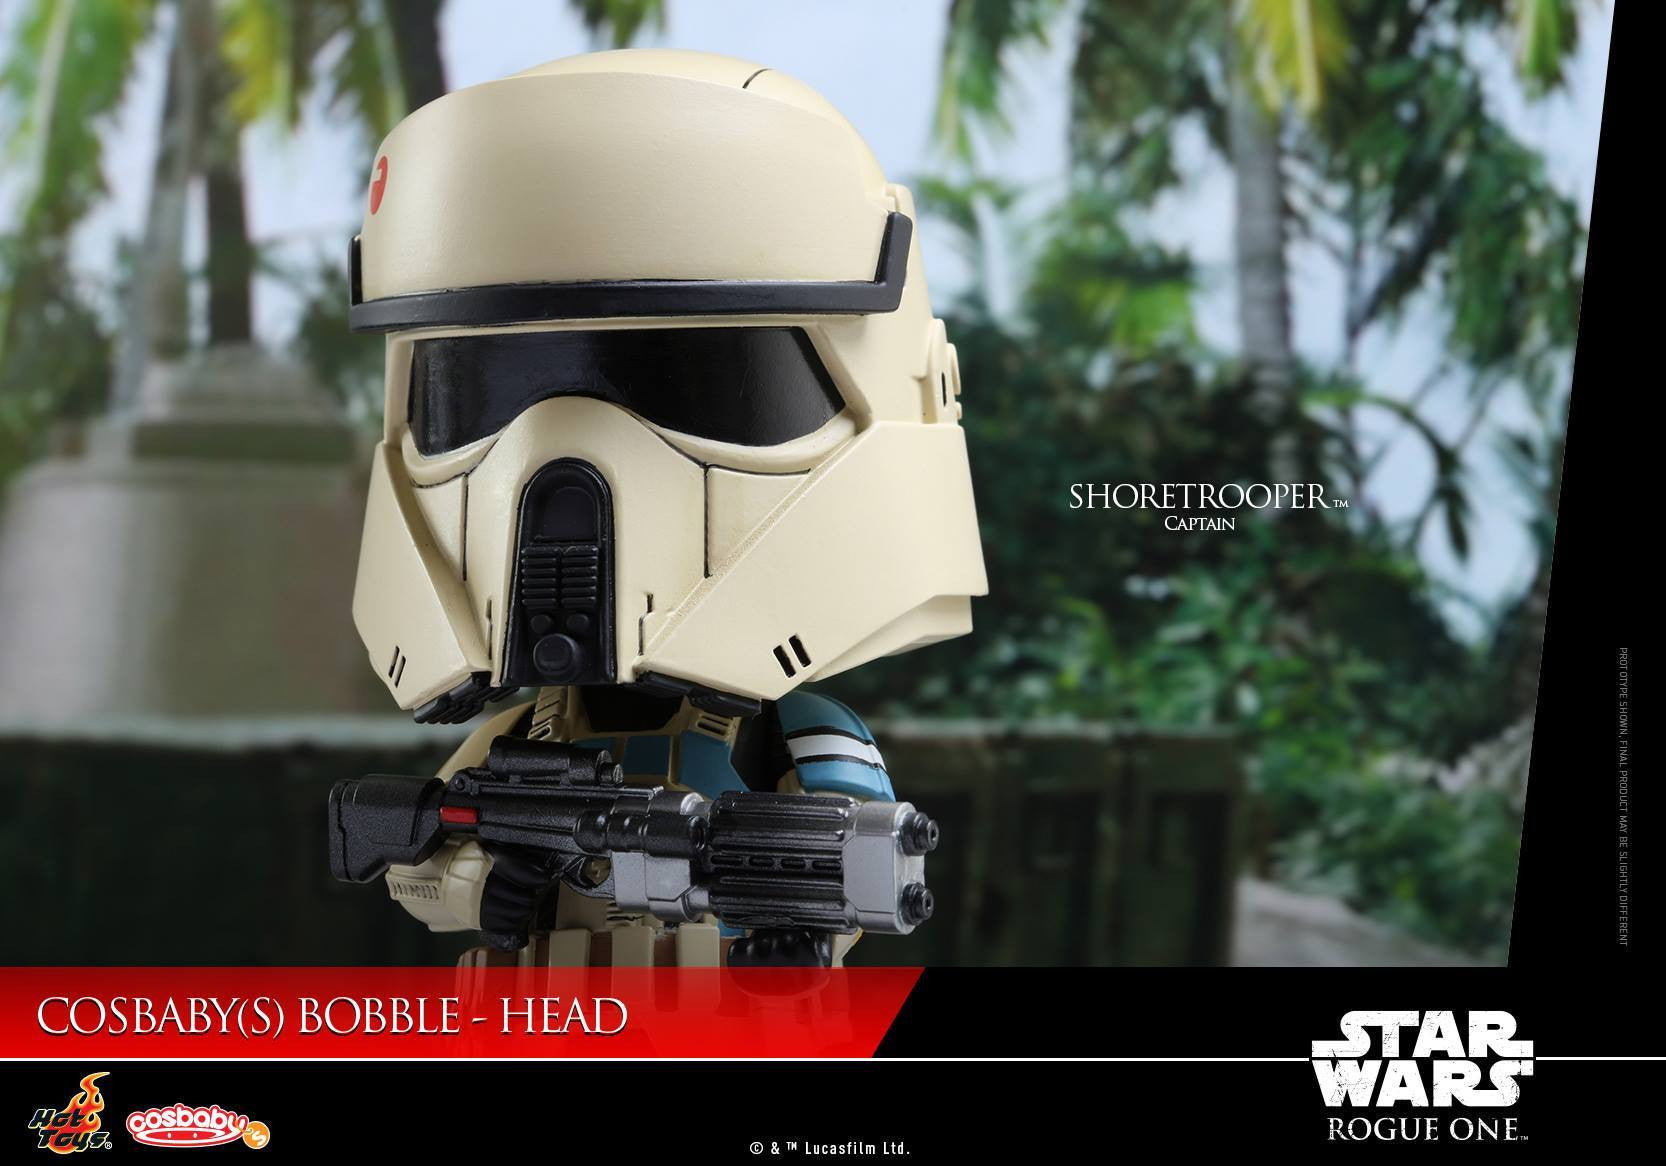 Hot Toys - COSB332 - Rogue One: A Star Wars Story - Shoretrooper Captain Cosbaby Bobble-Head - Marvelous Toys - 4